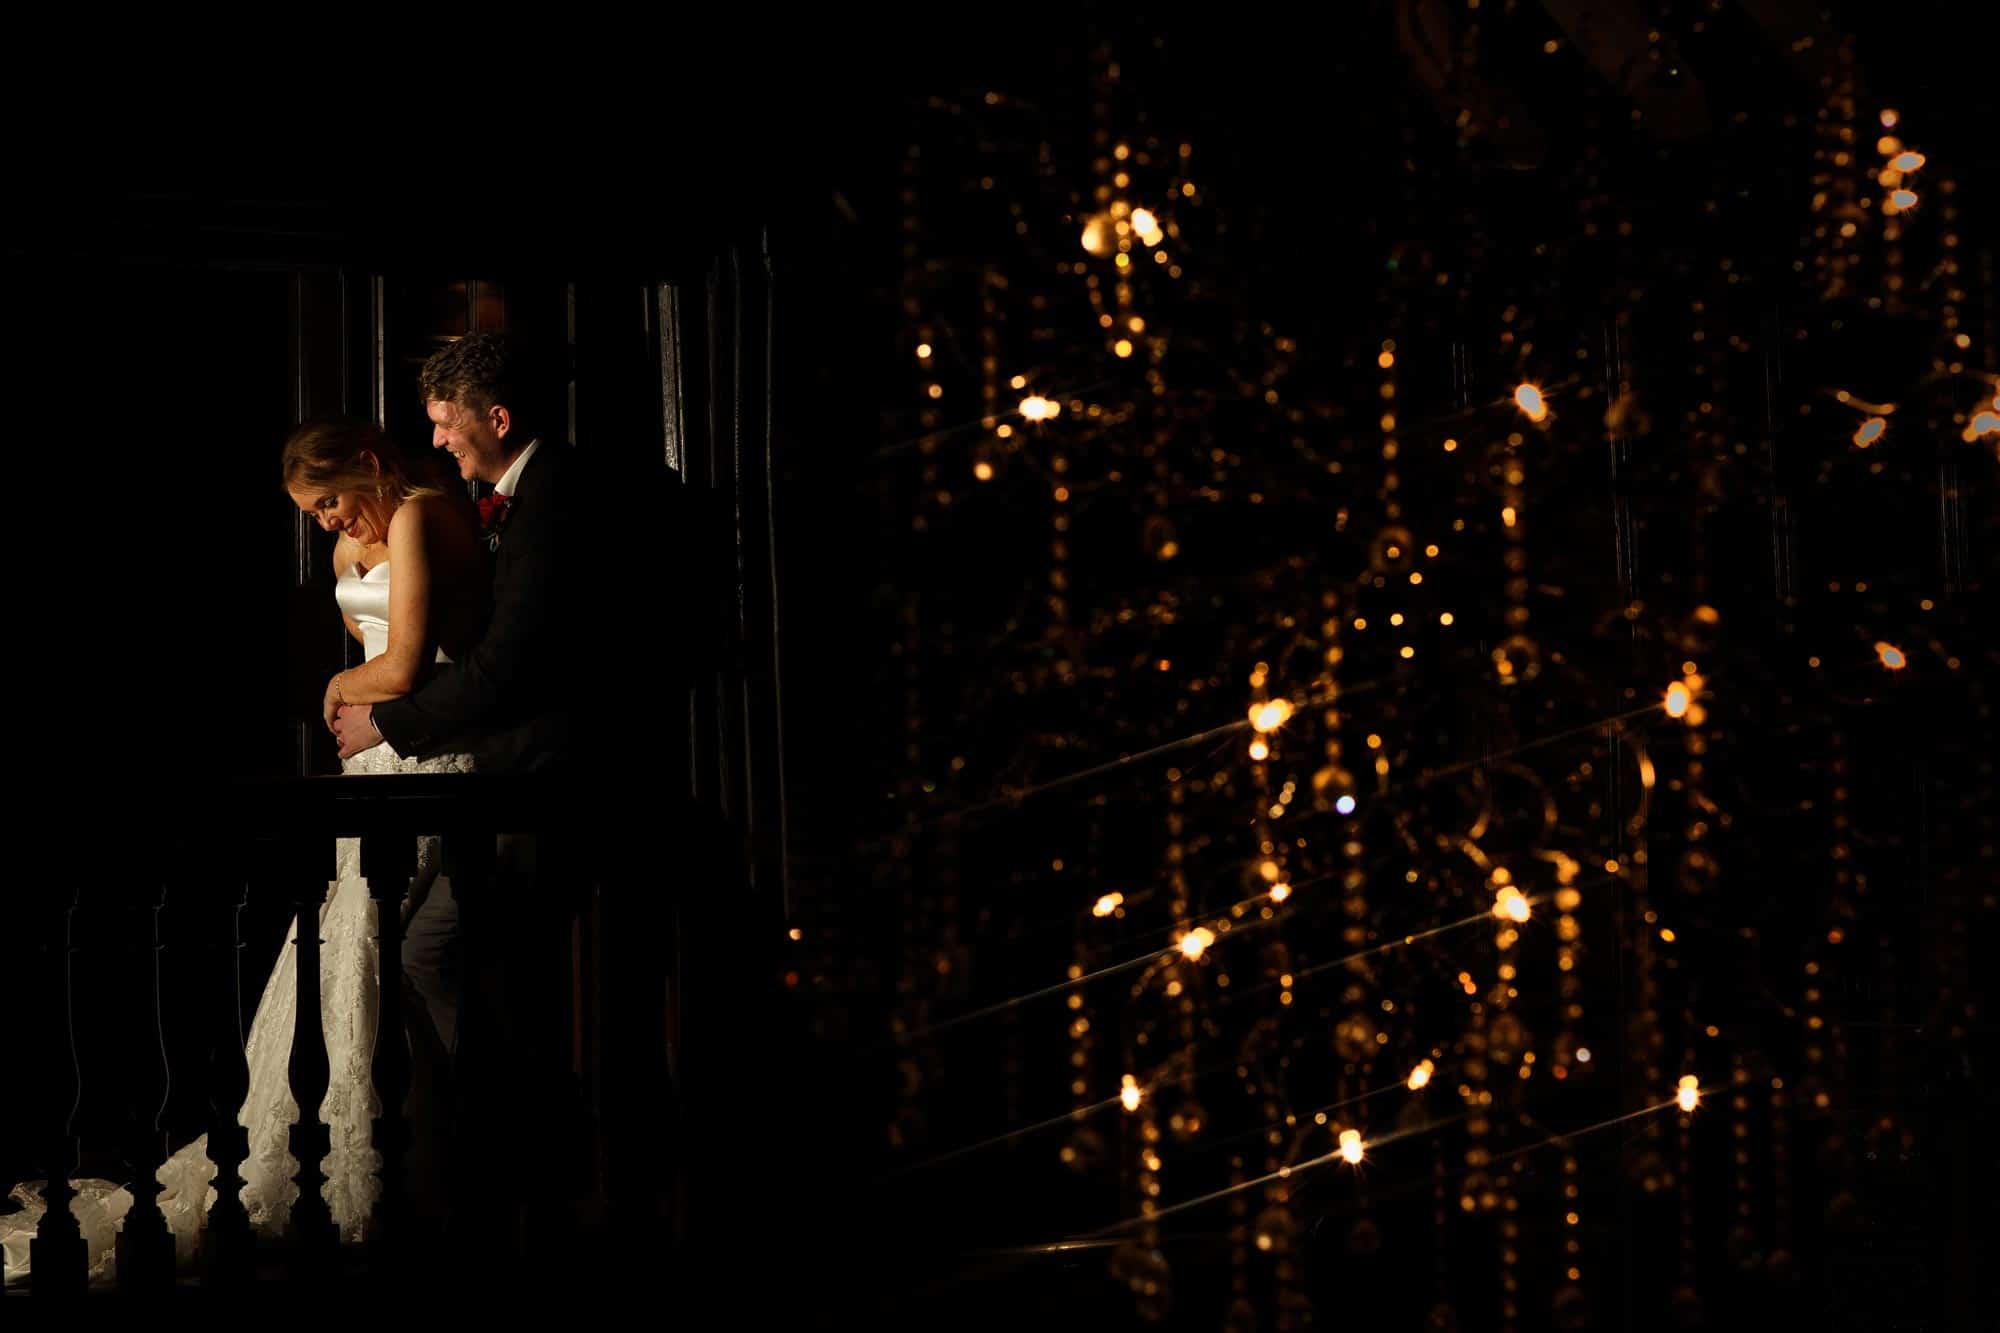 Wedding photograph of the Bride and Groom in front of the Chandelier at Mitton Hall